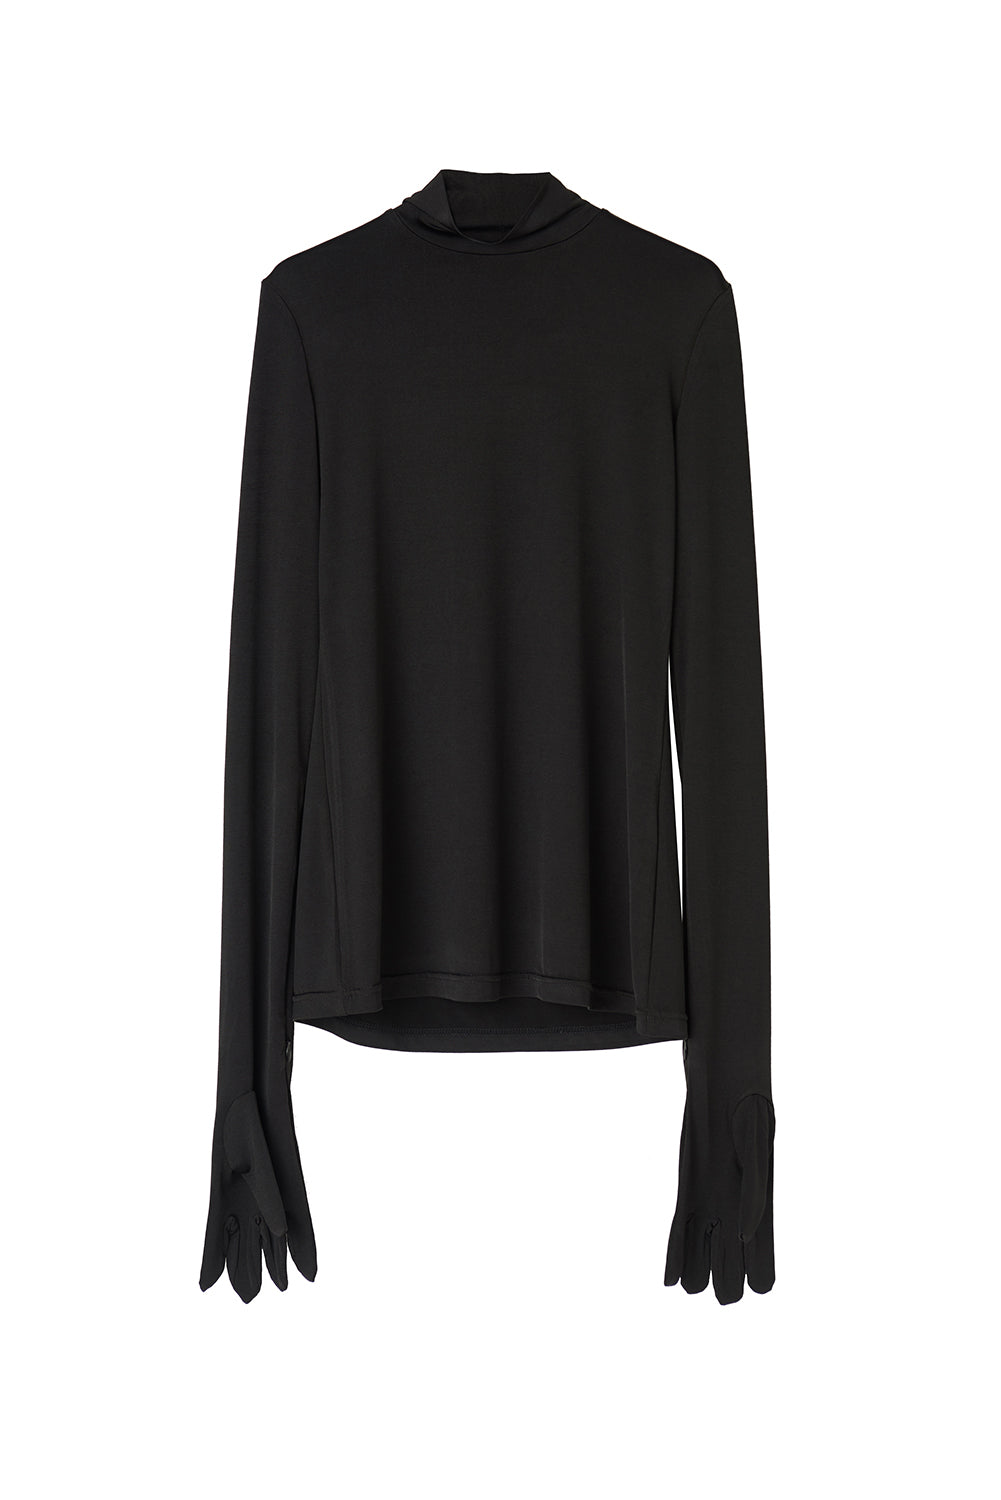 Turtleneck Top With Gloves-Black